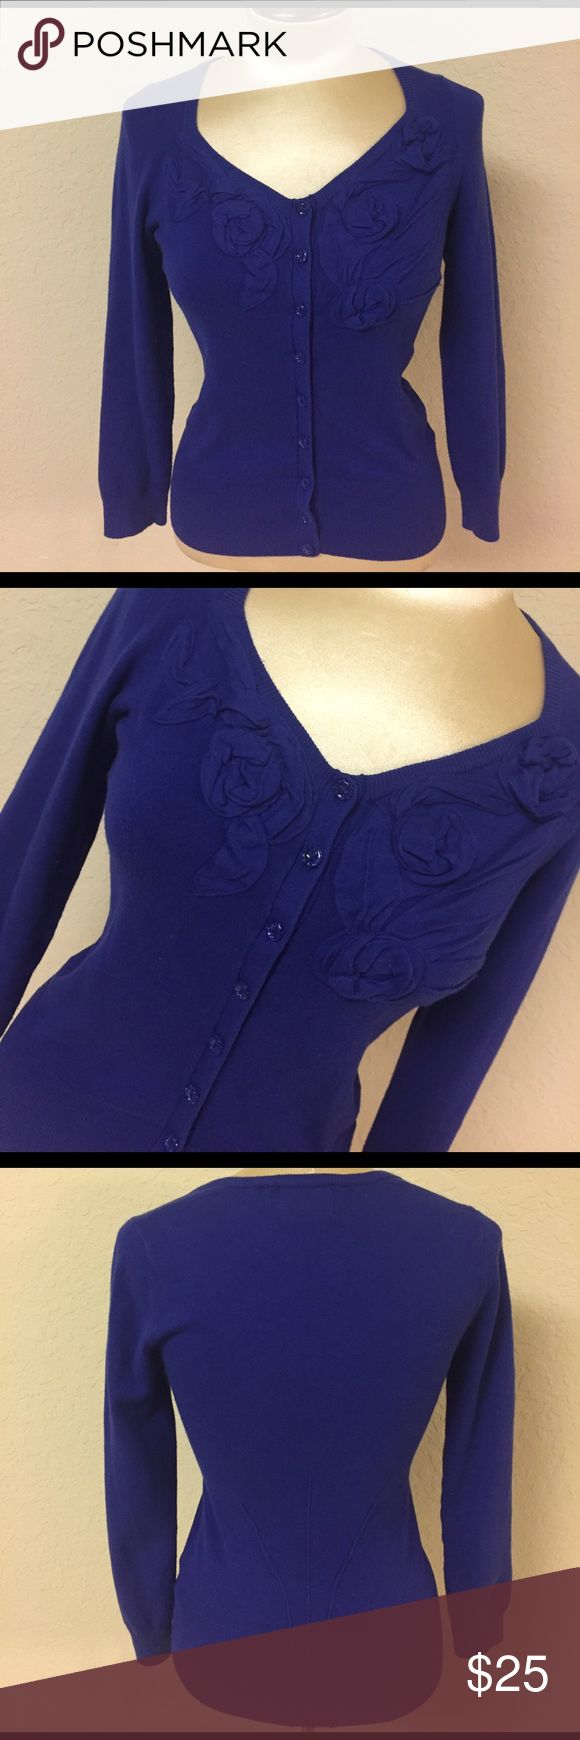 Selling this Anthropologie Royal Blue Sweater with Rose Details on Poshmark! My username is: hannahleigh870. #shopmycloset #poshmark #fashion #shopping #style #forsale #Anthropologie #Tops